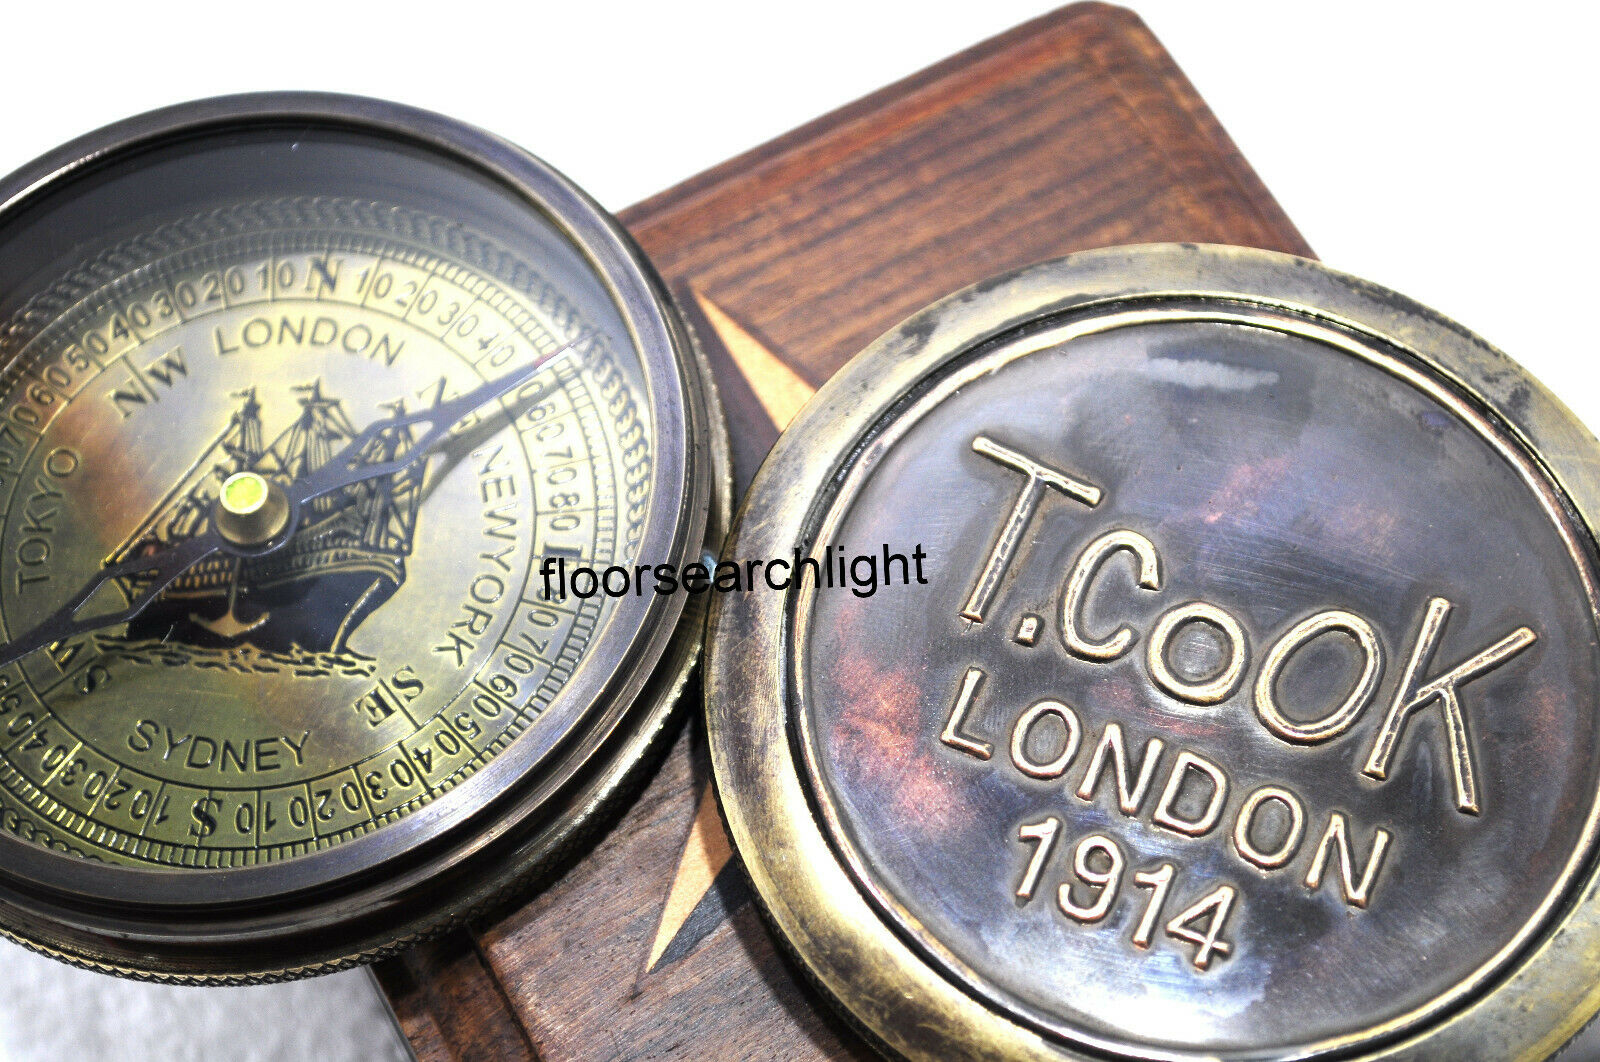 1914 T.COOK London Antique Vintage Compass Marine Collectible With Wooden Box